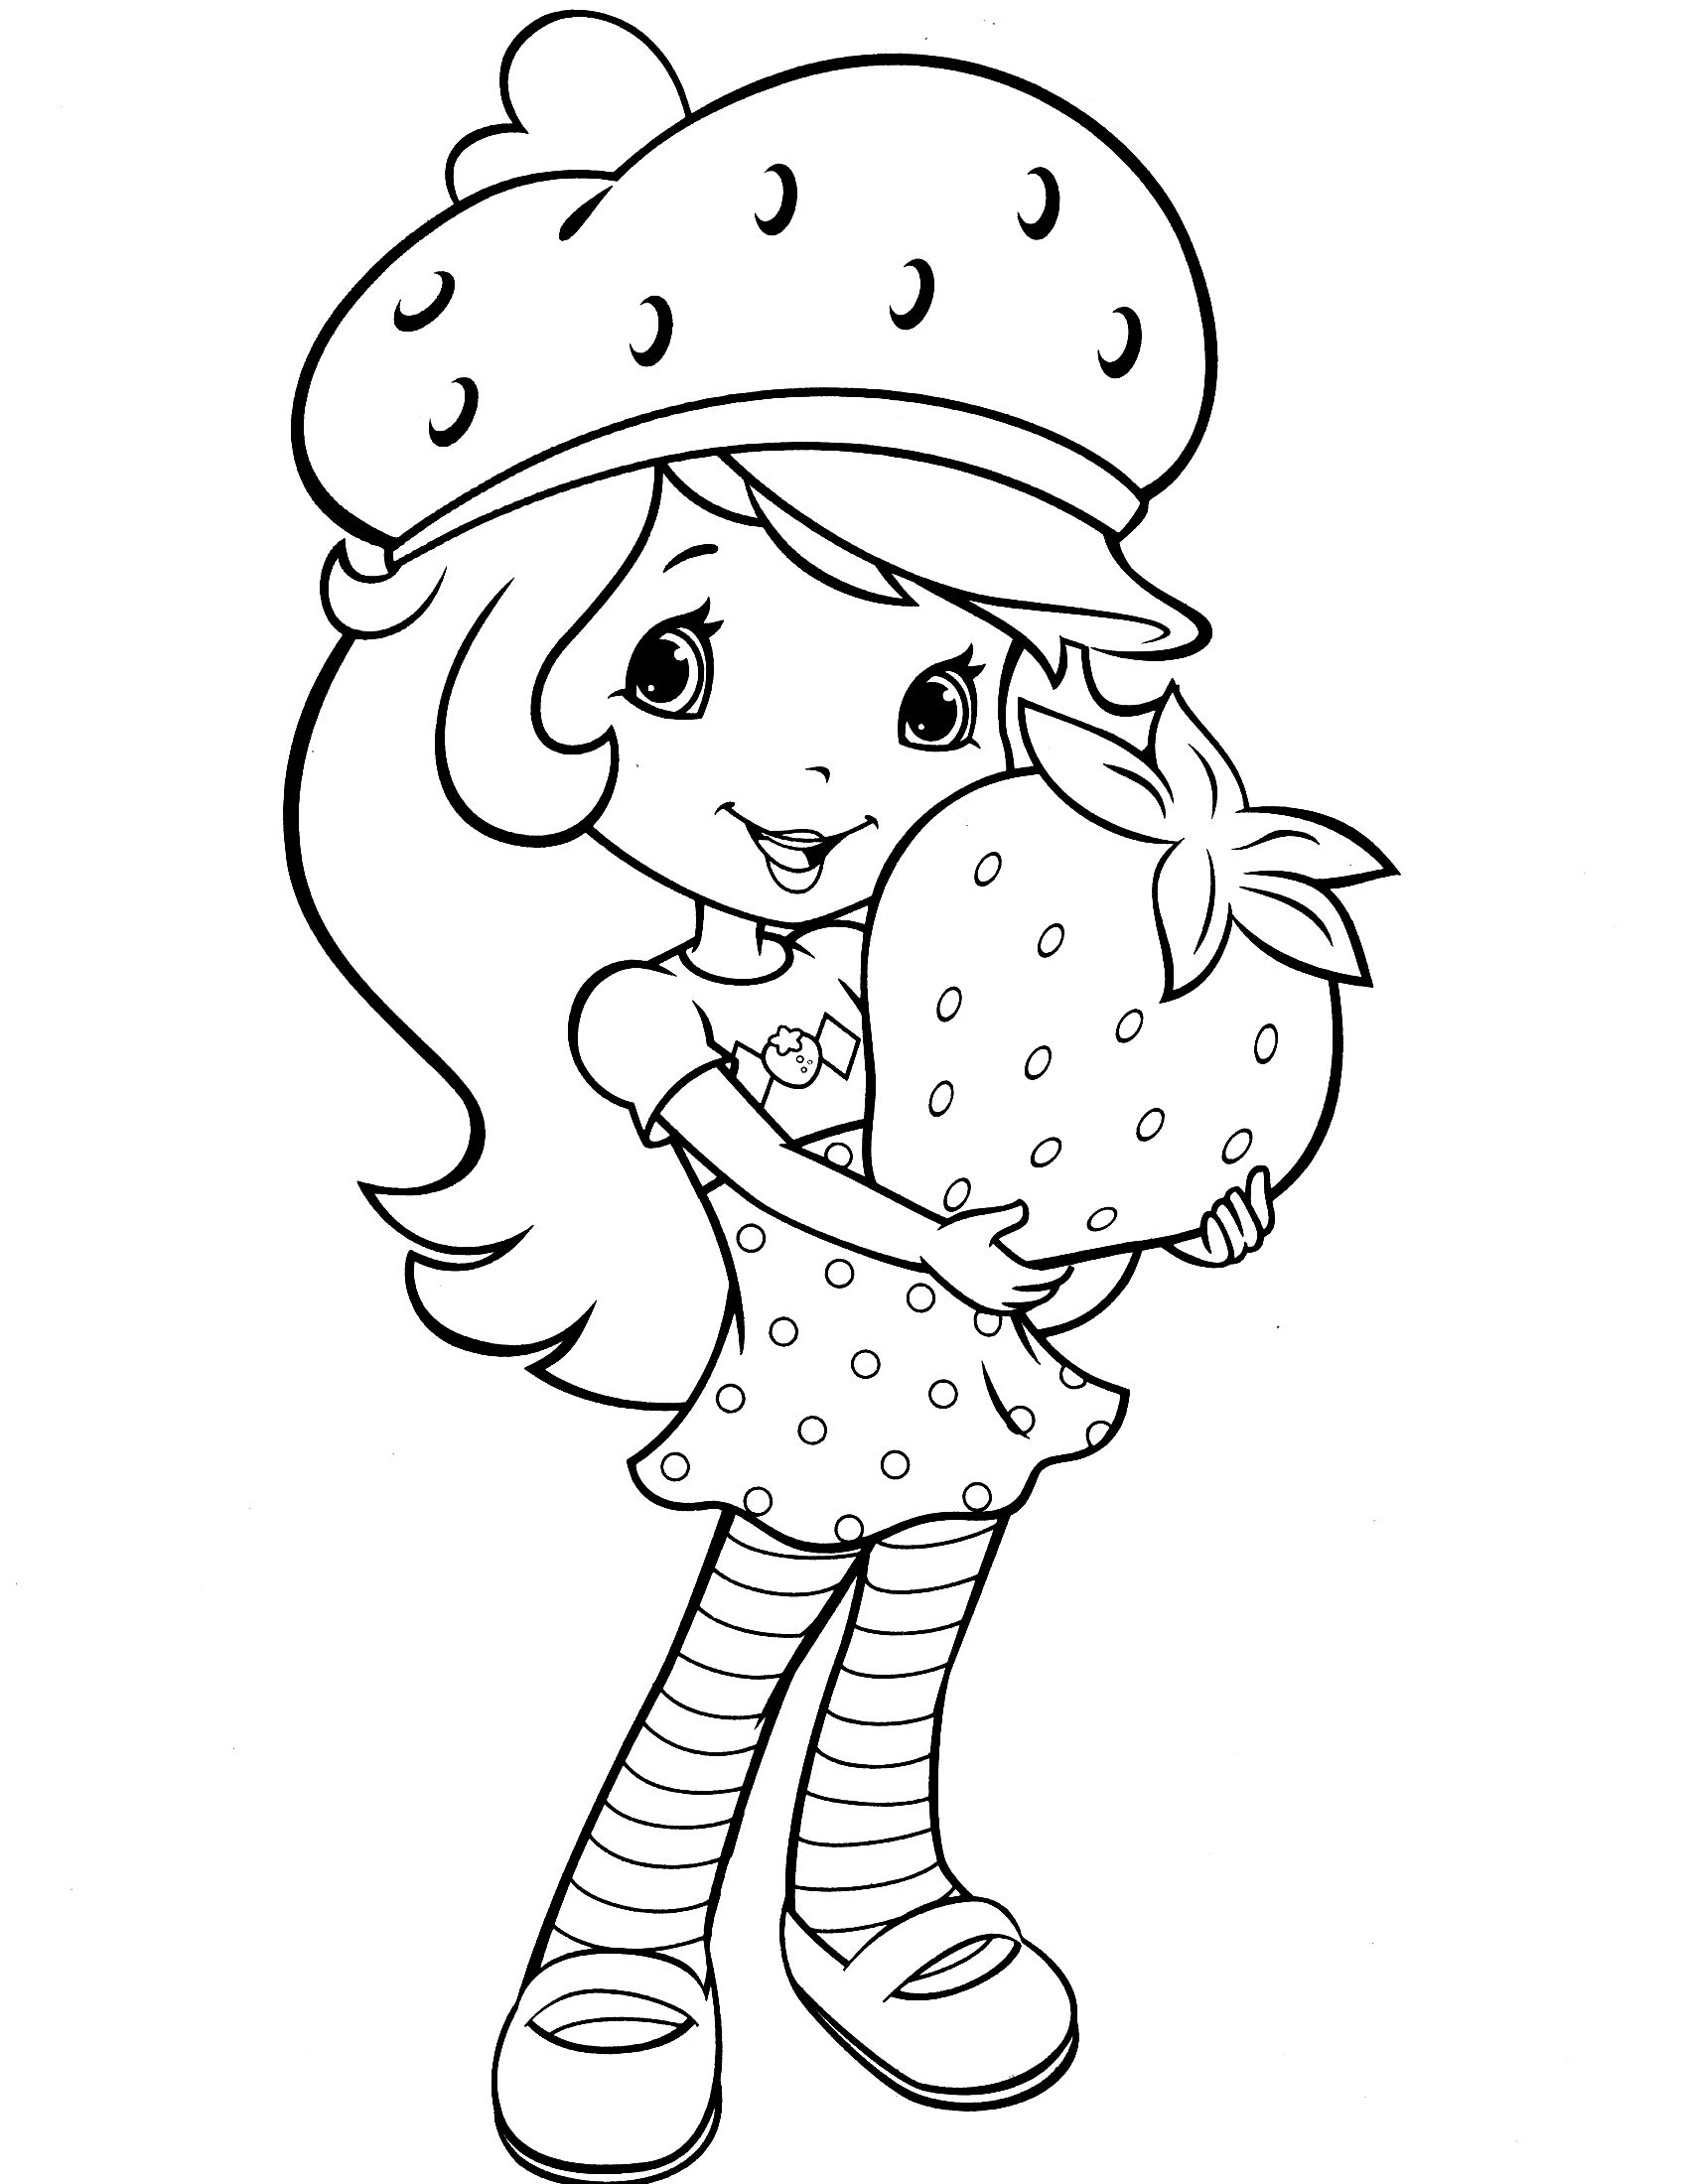 strawberry shortcake coloring page | colores América | Pinterest ...